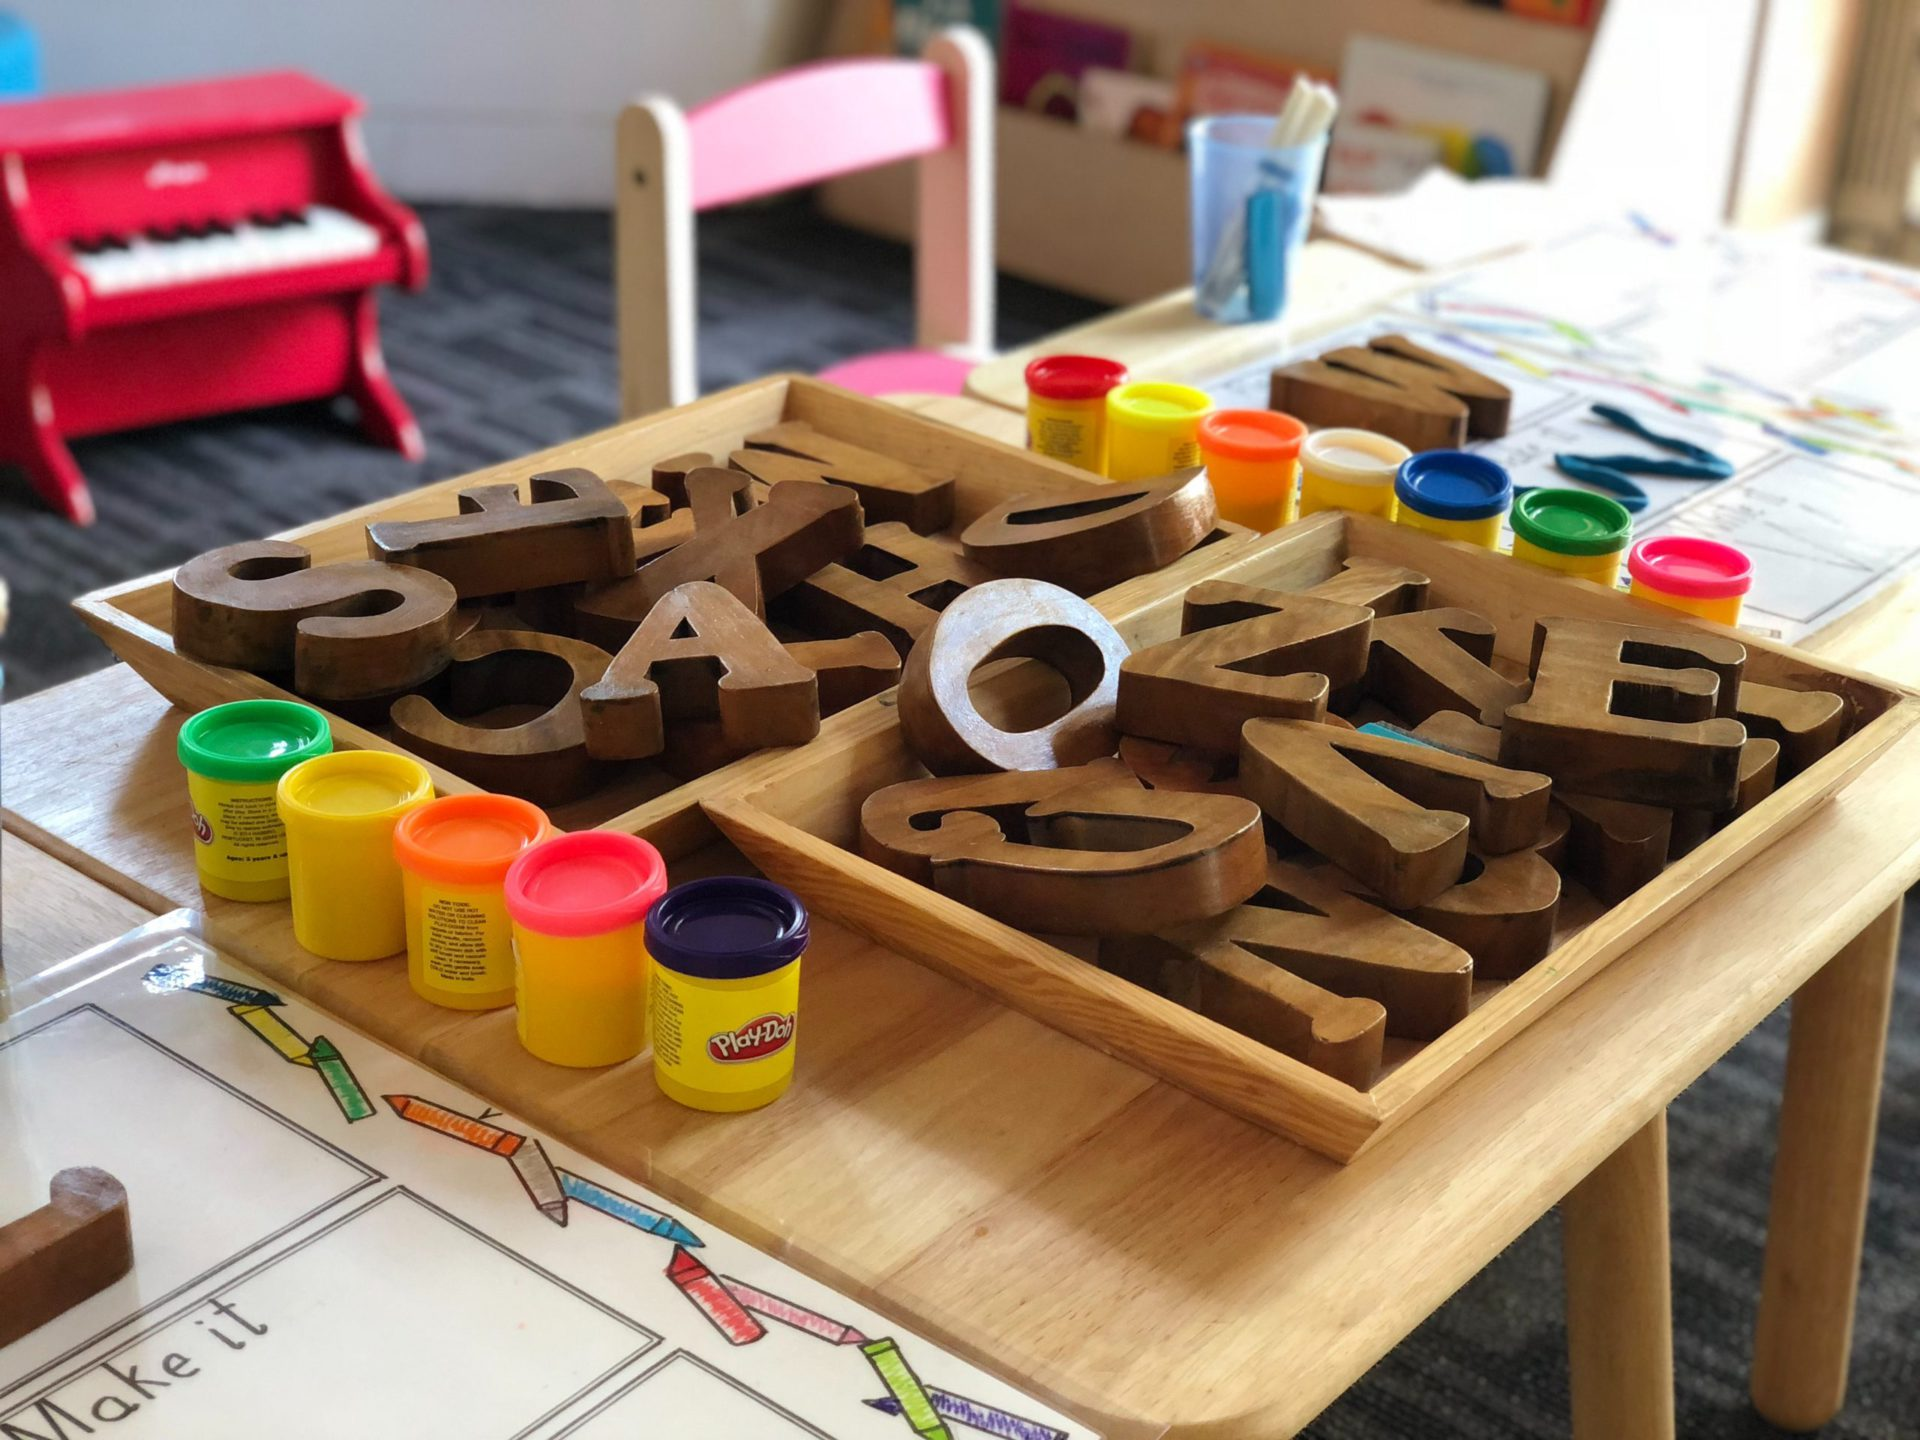 5 Researched-Backed Benefits of Montessori School for Children